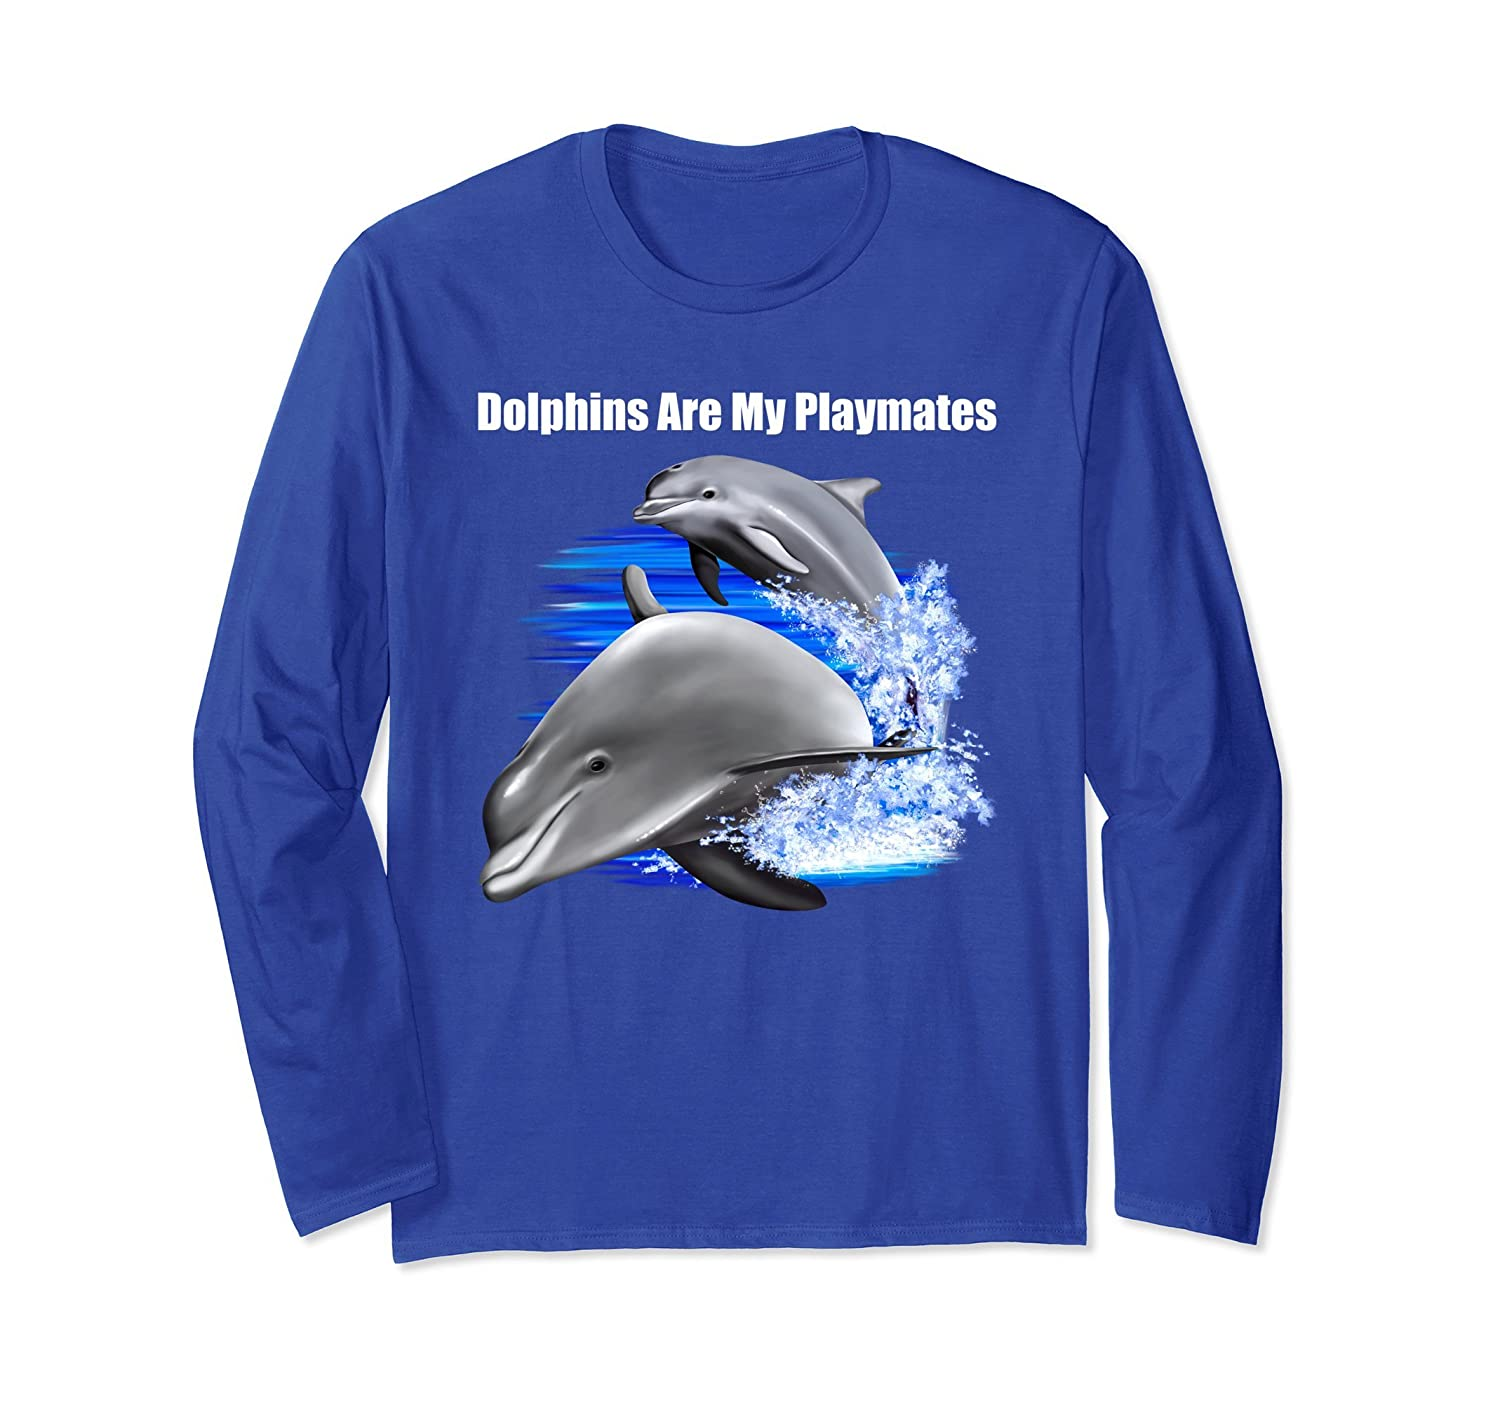 Dolphin Design Long Sleeve T-Shirt Dolphins Are Playmates.-mt